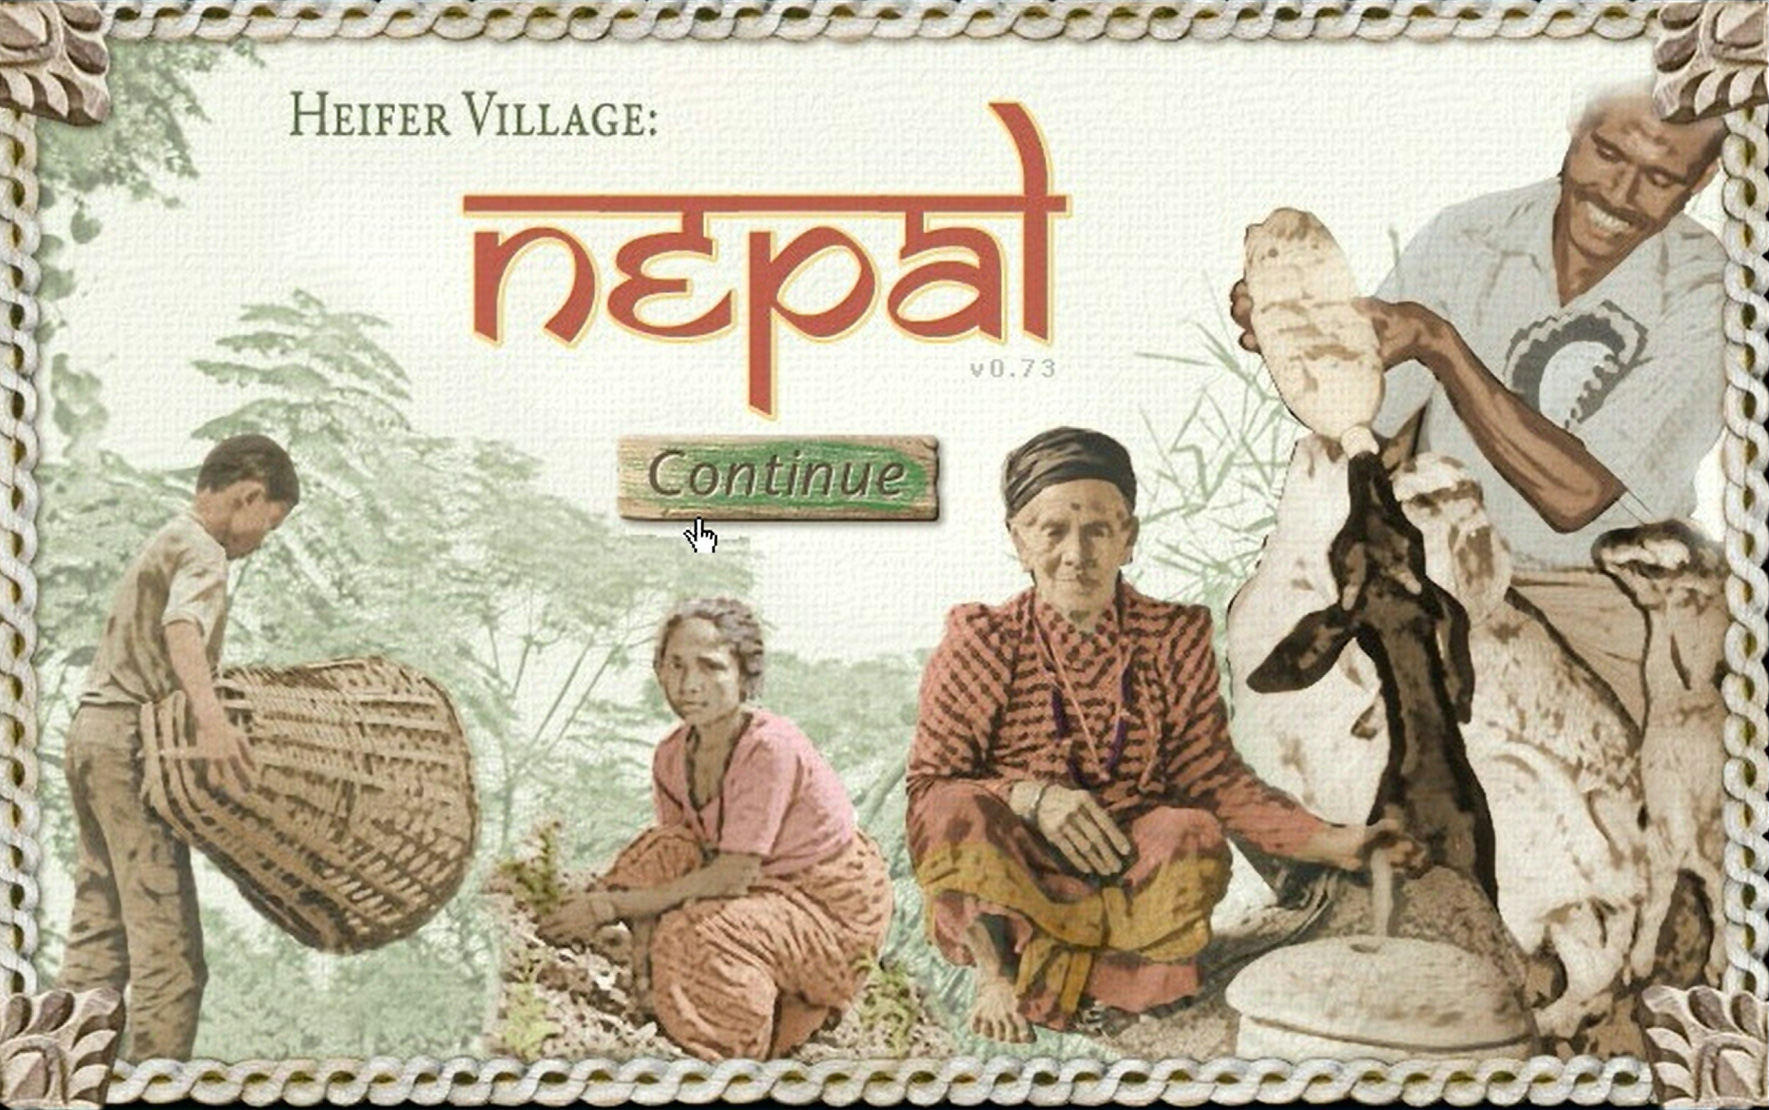 Heifer Village: Nepal, Virtual Heifer Village